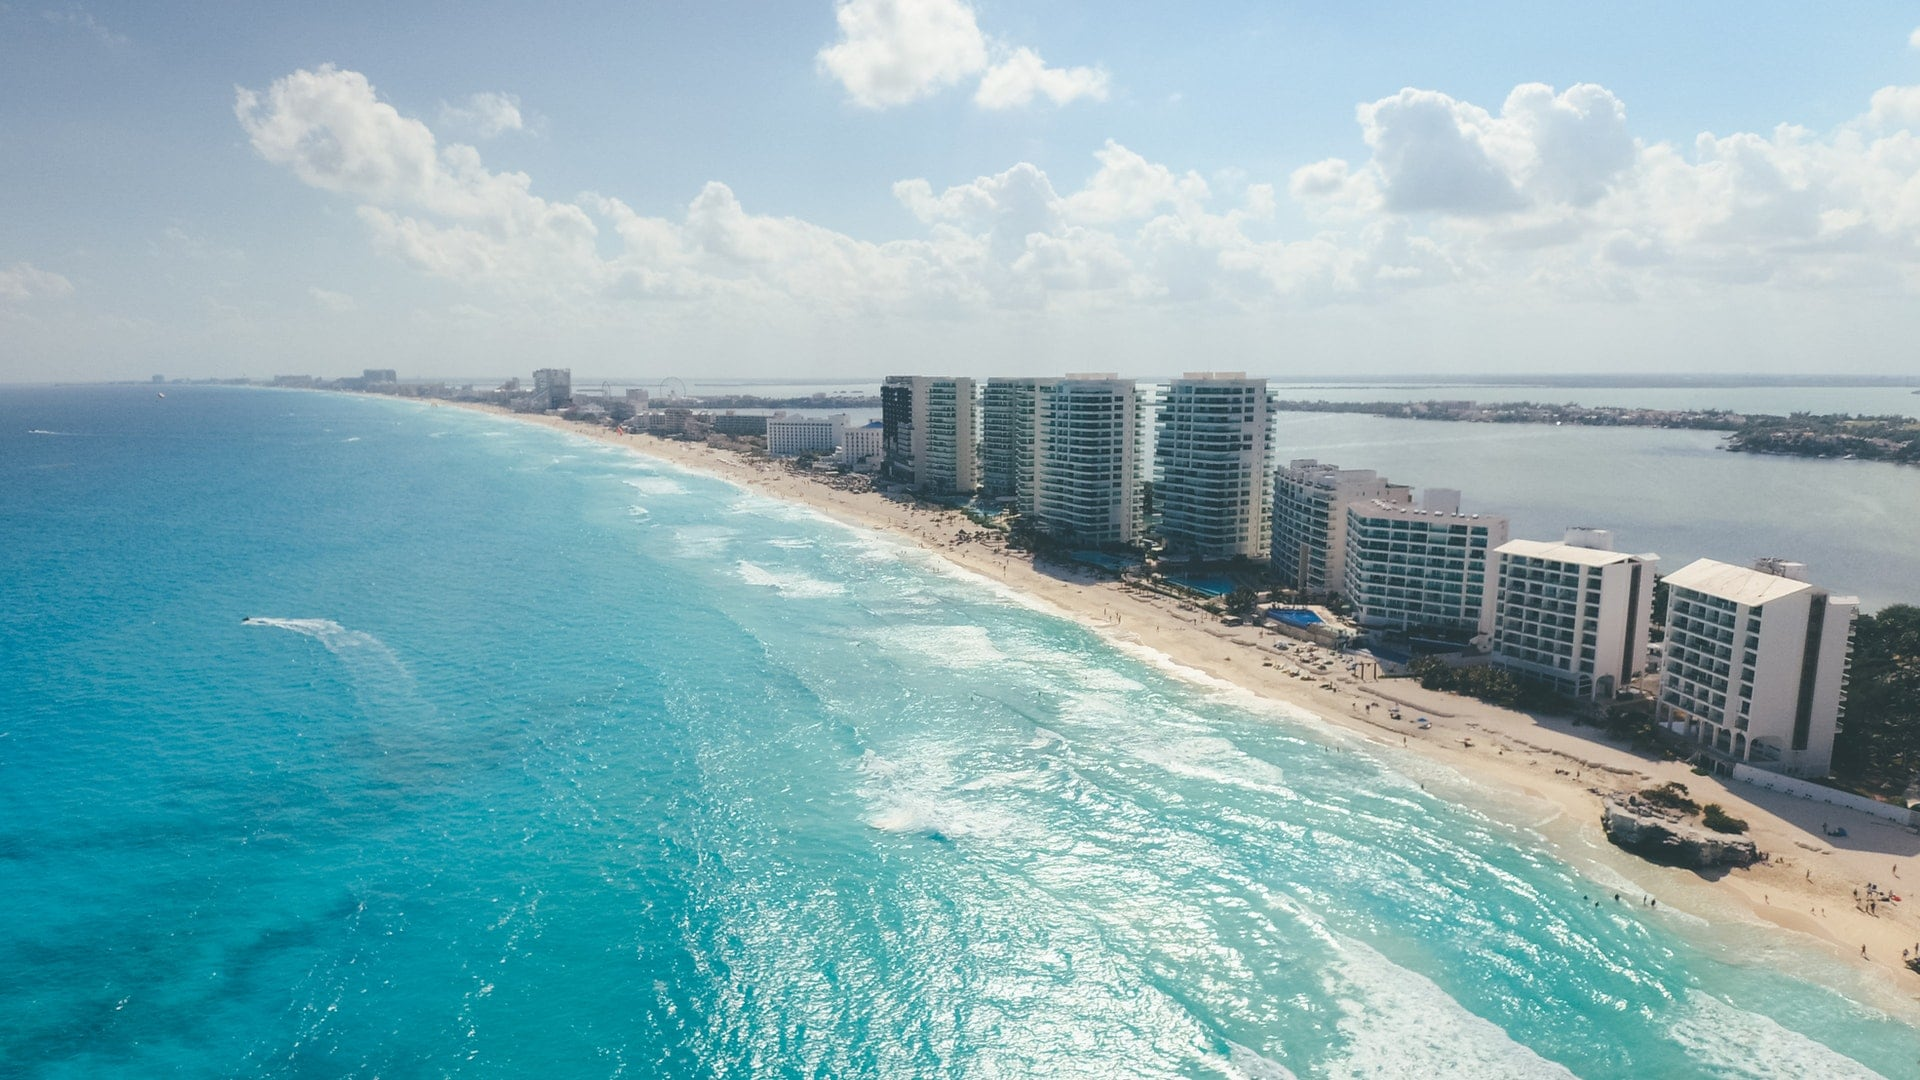 Cancun vs Hawaii - Which is better for vacation? Why?